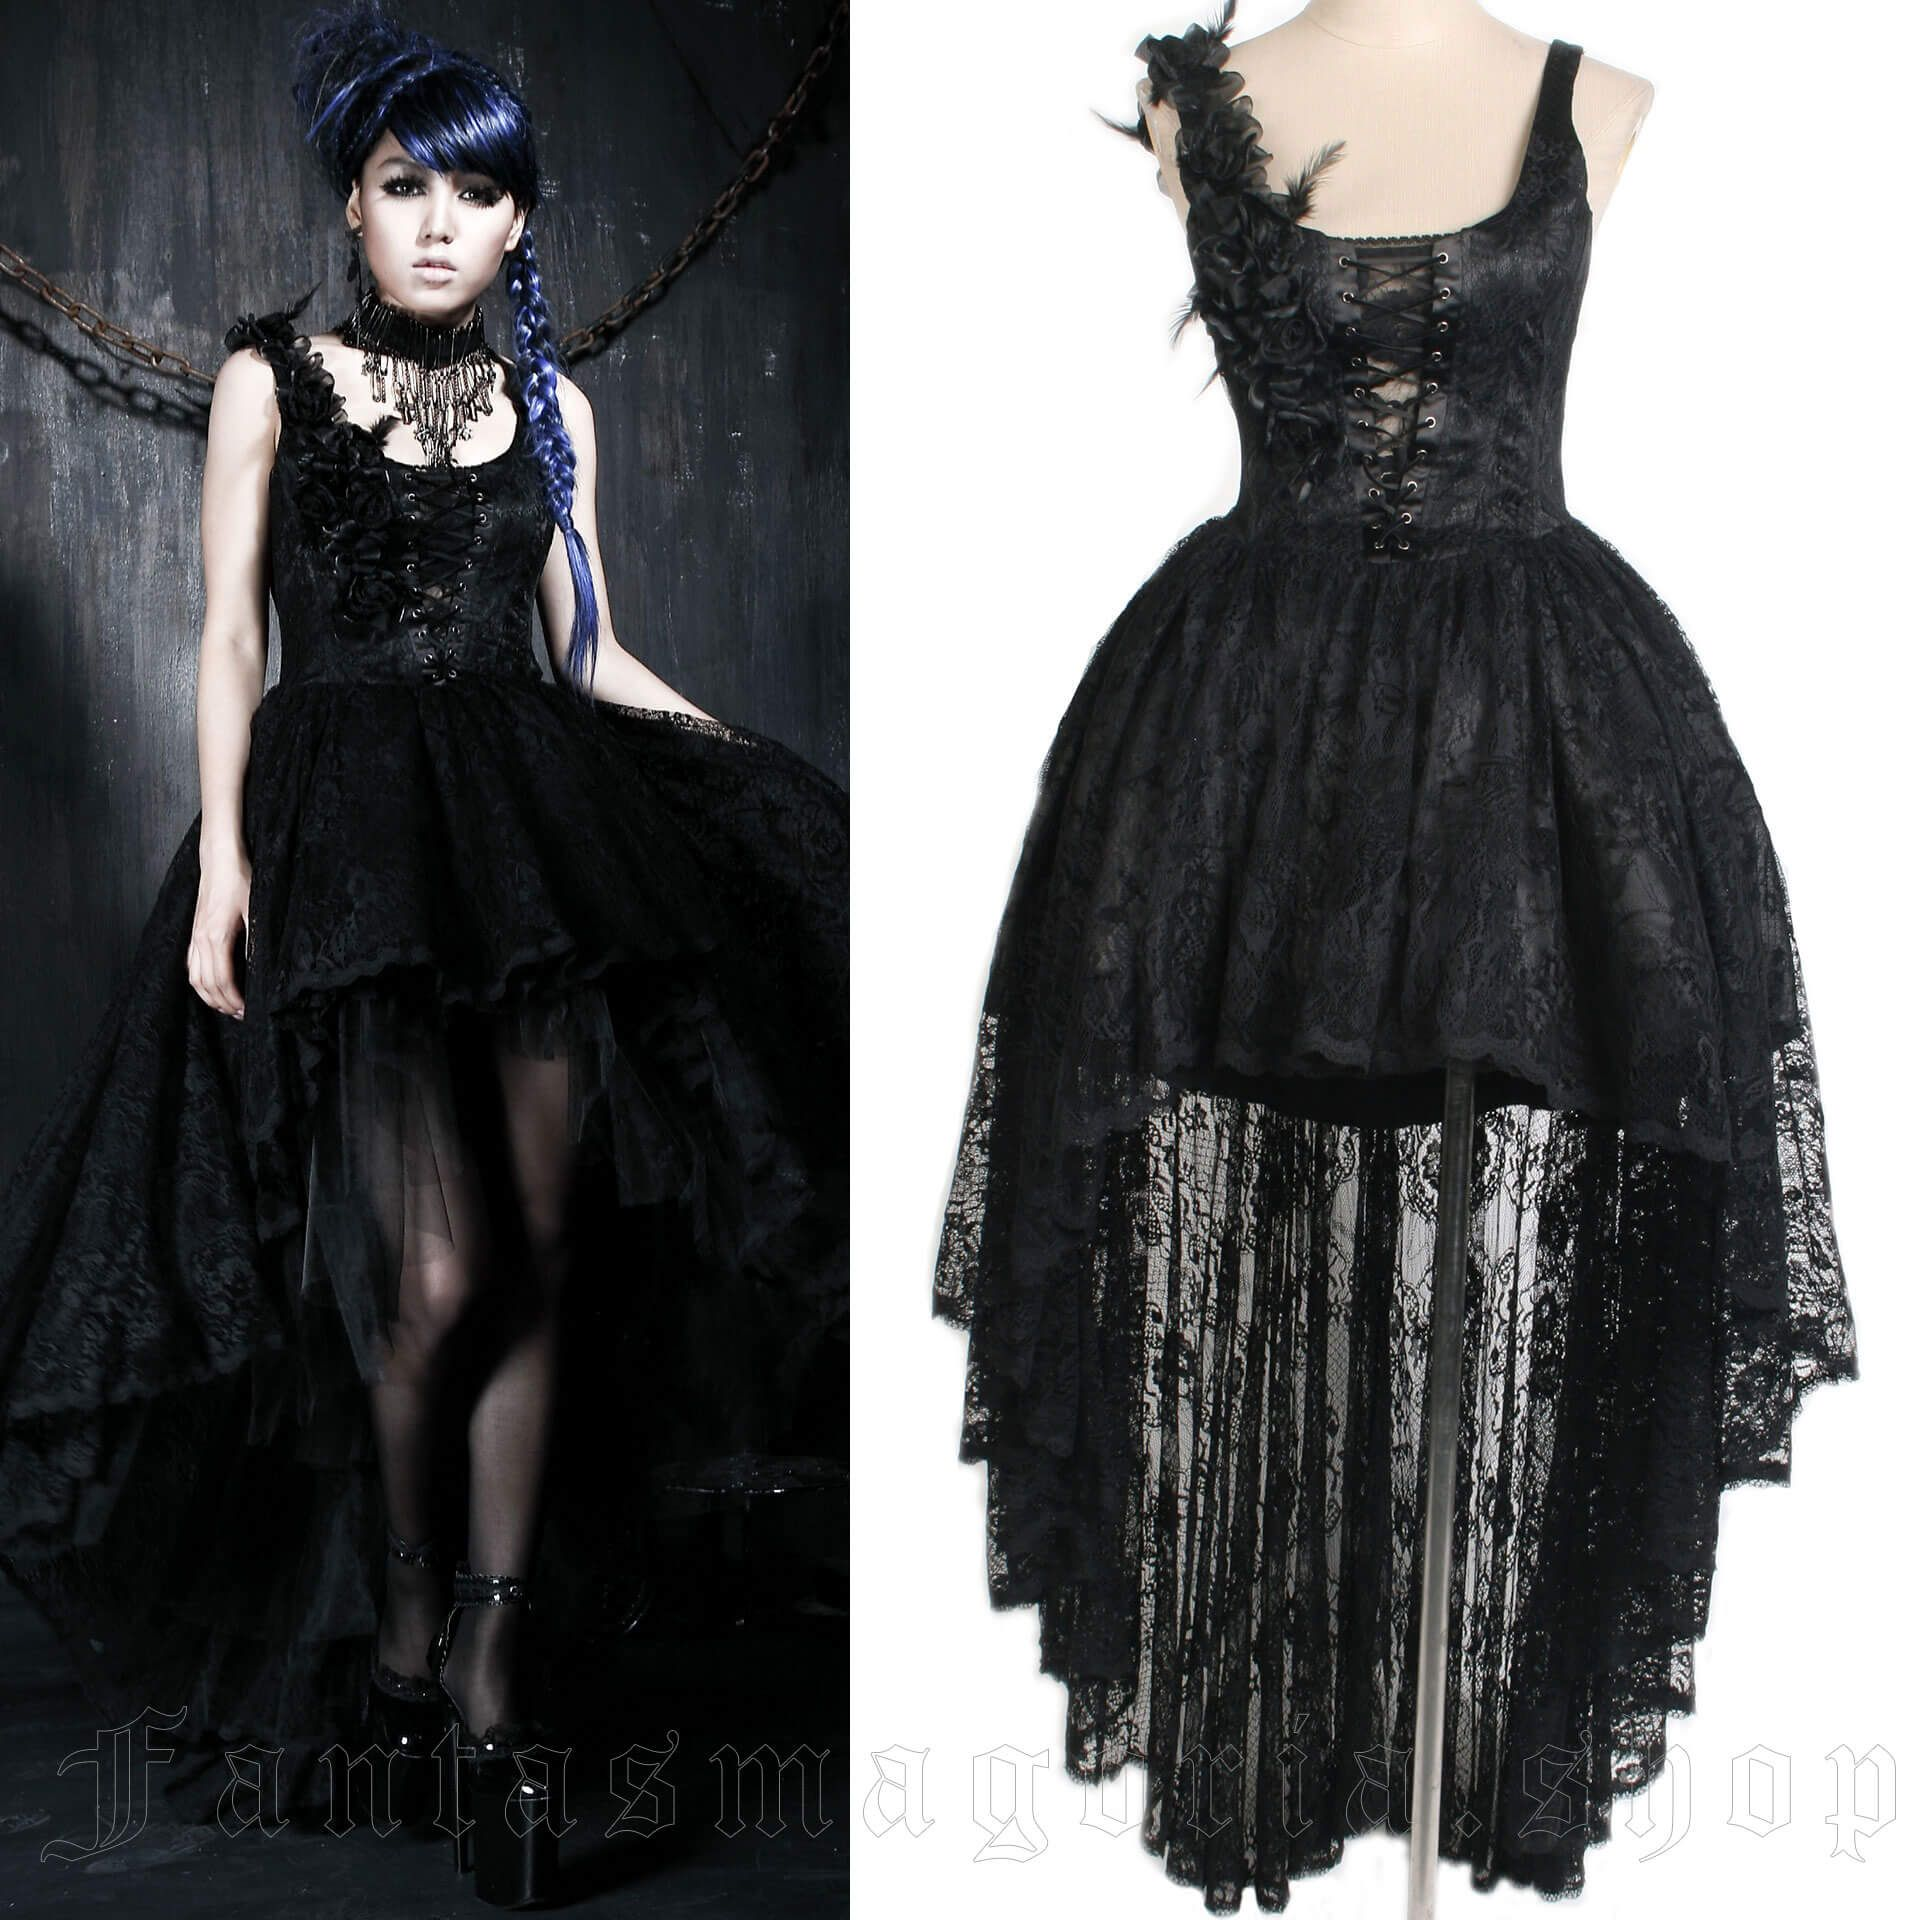 women's Gardenia Dress by PUNK RAVE brand, code: Q-174